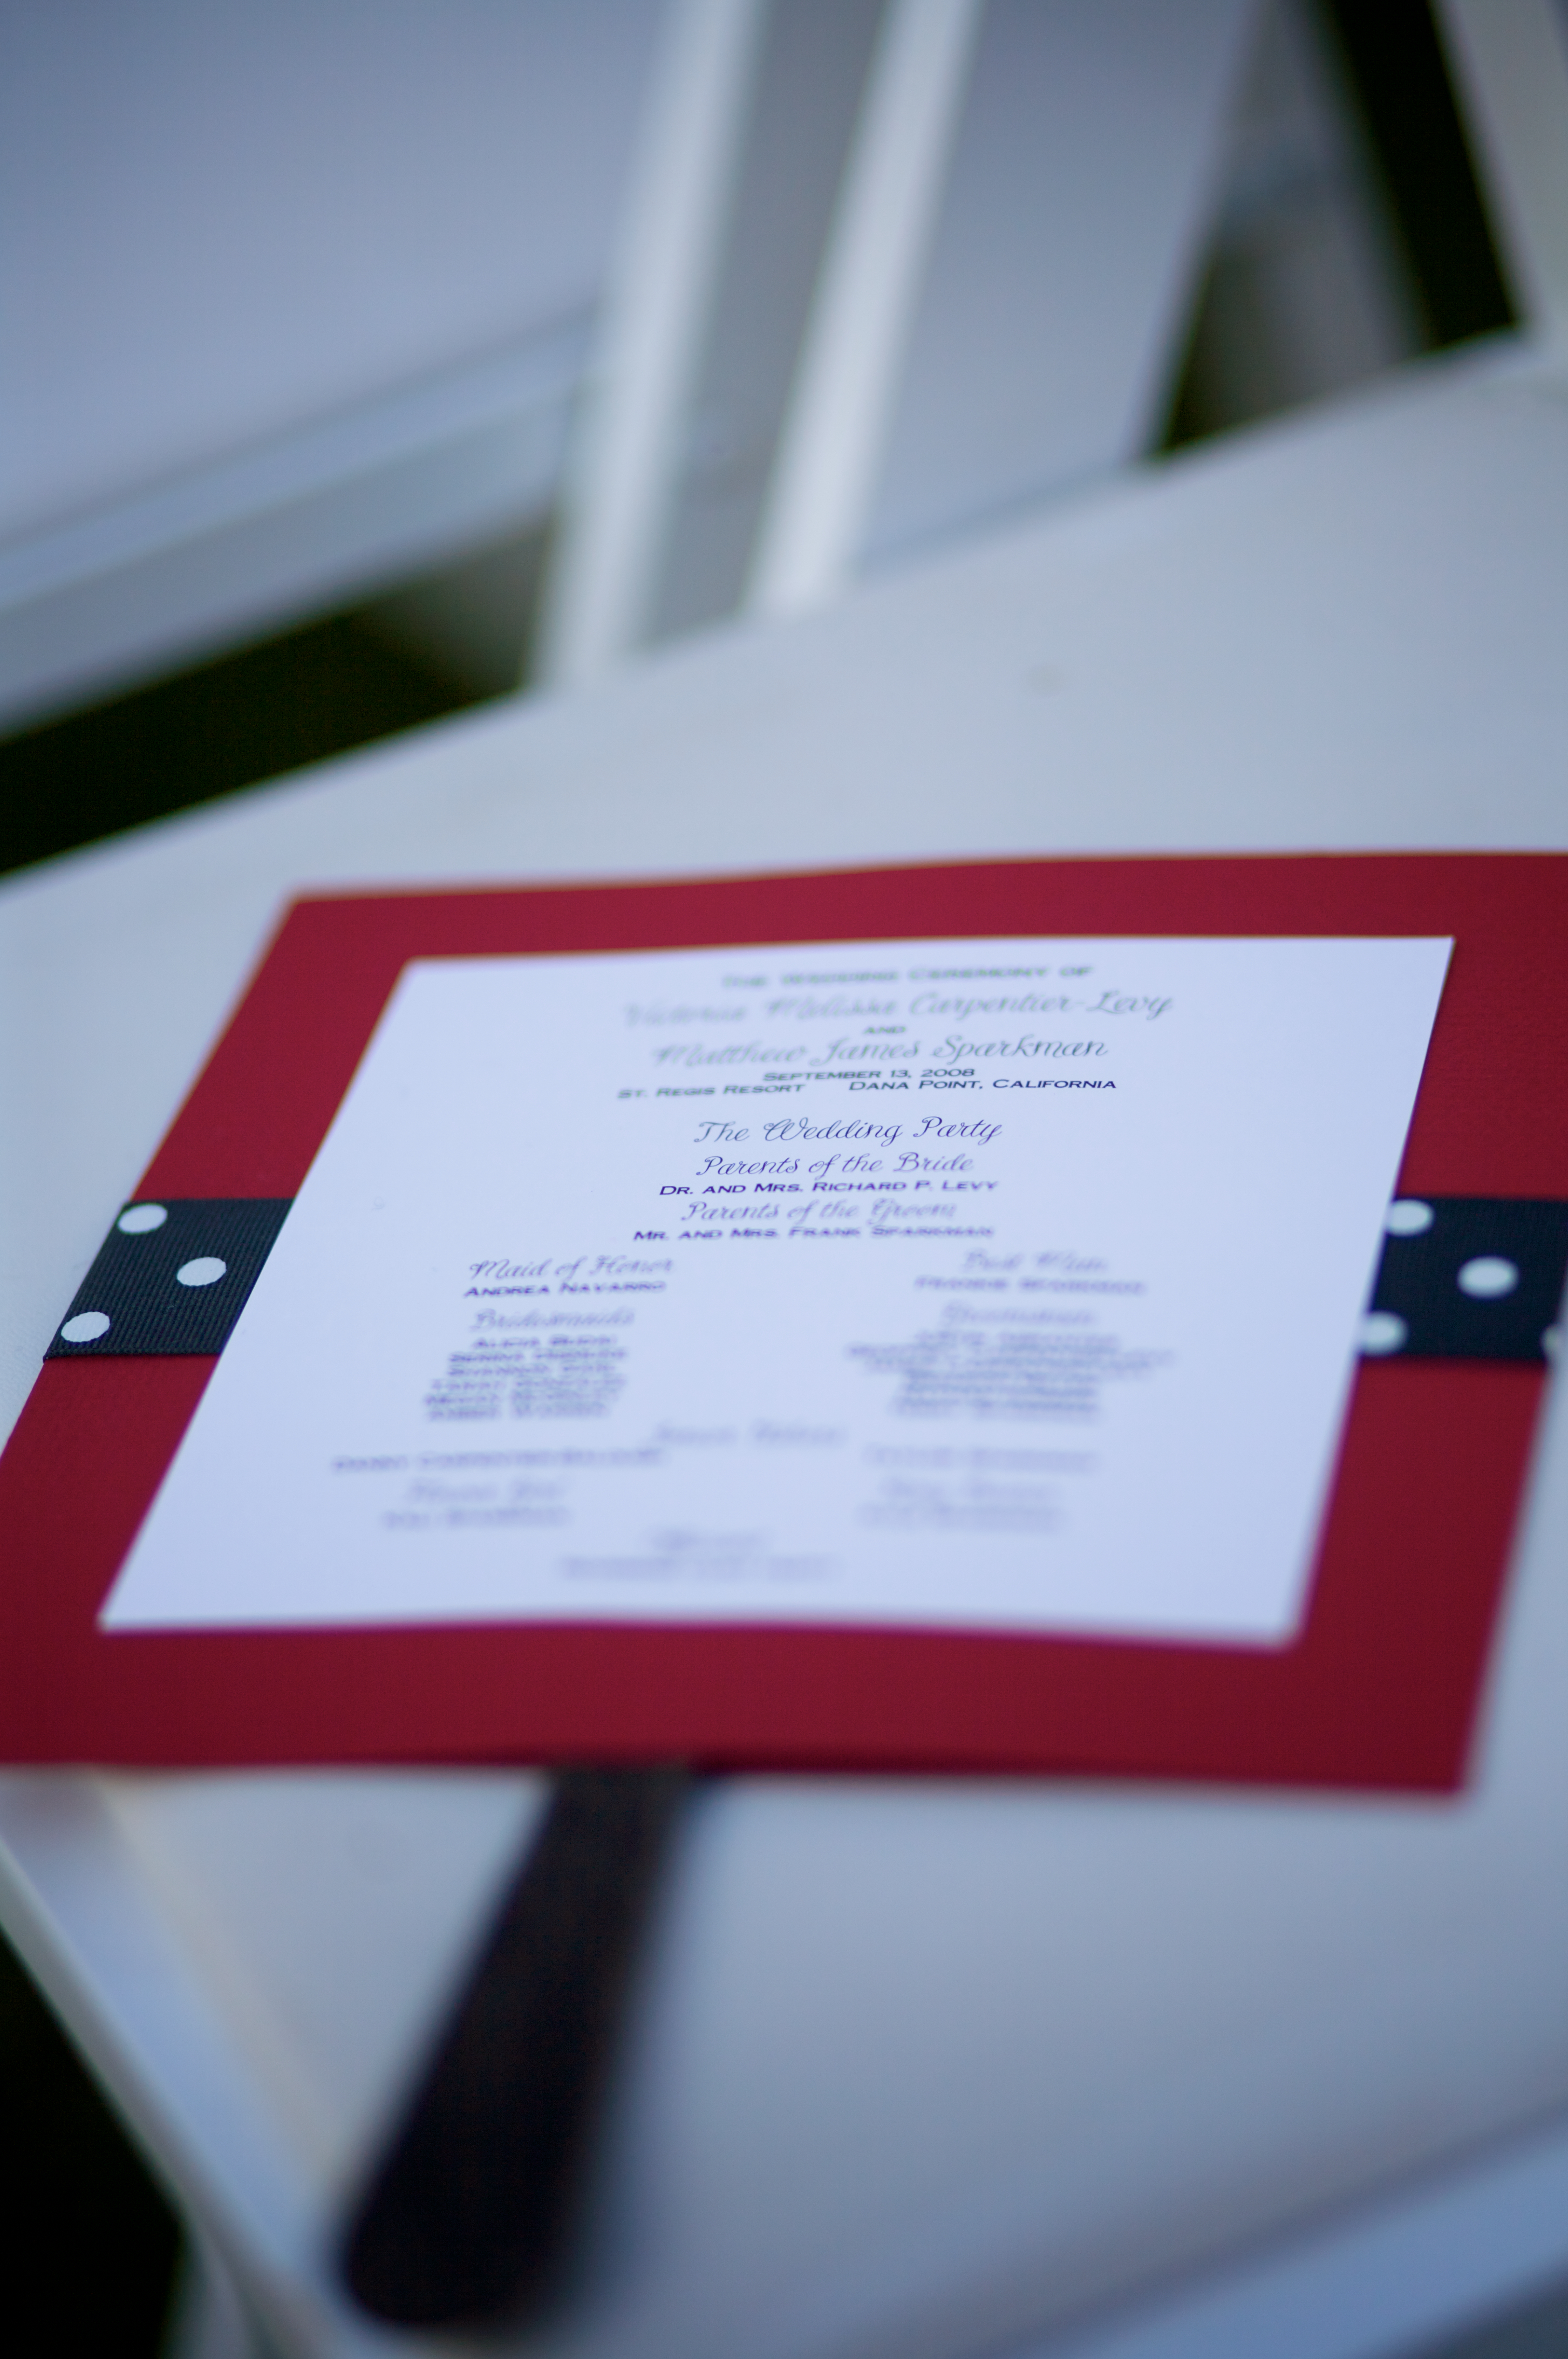 Ceremony, Flowers & Decor, Stationery, Programs, Stephanie lairson - wedding consultant